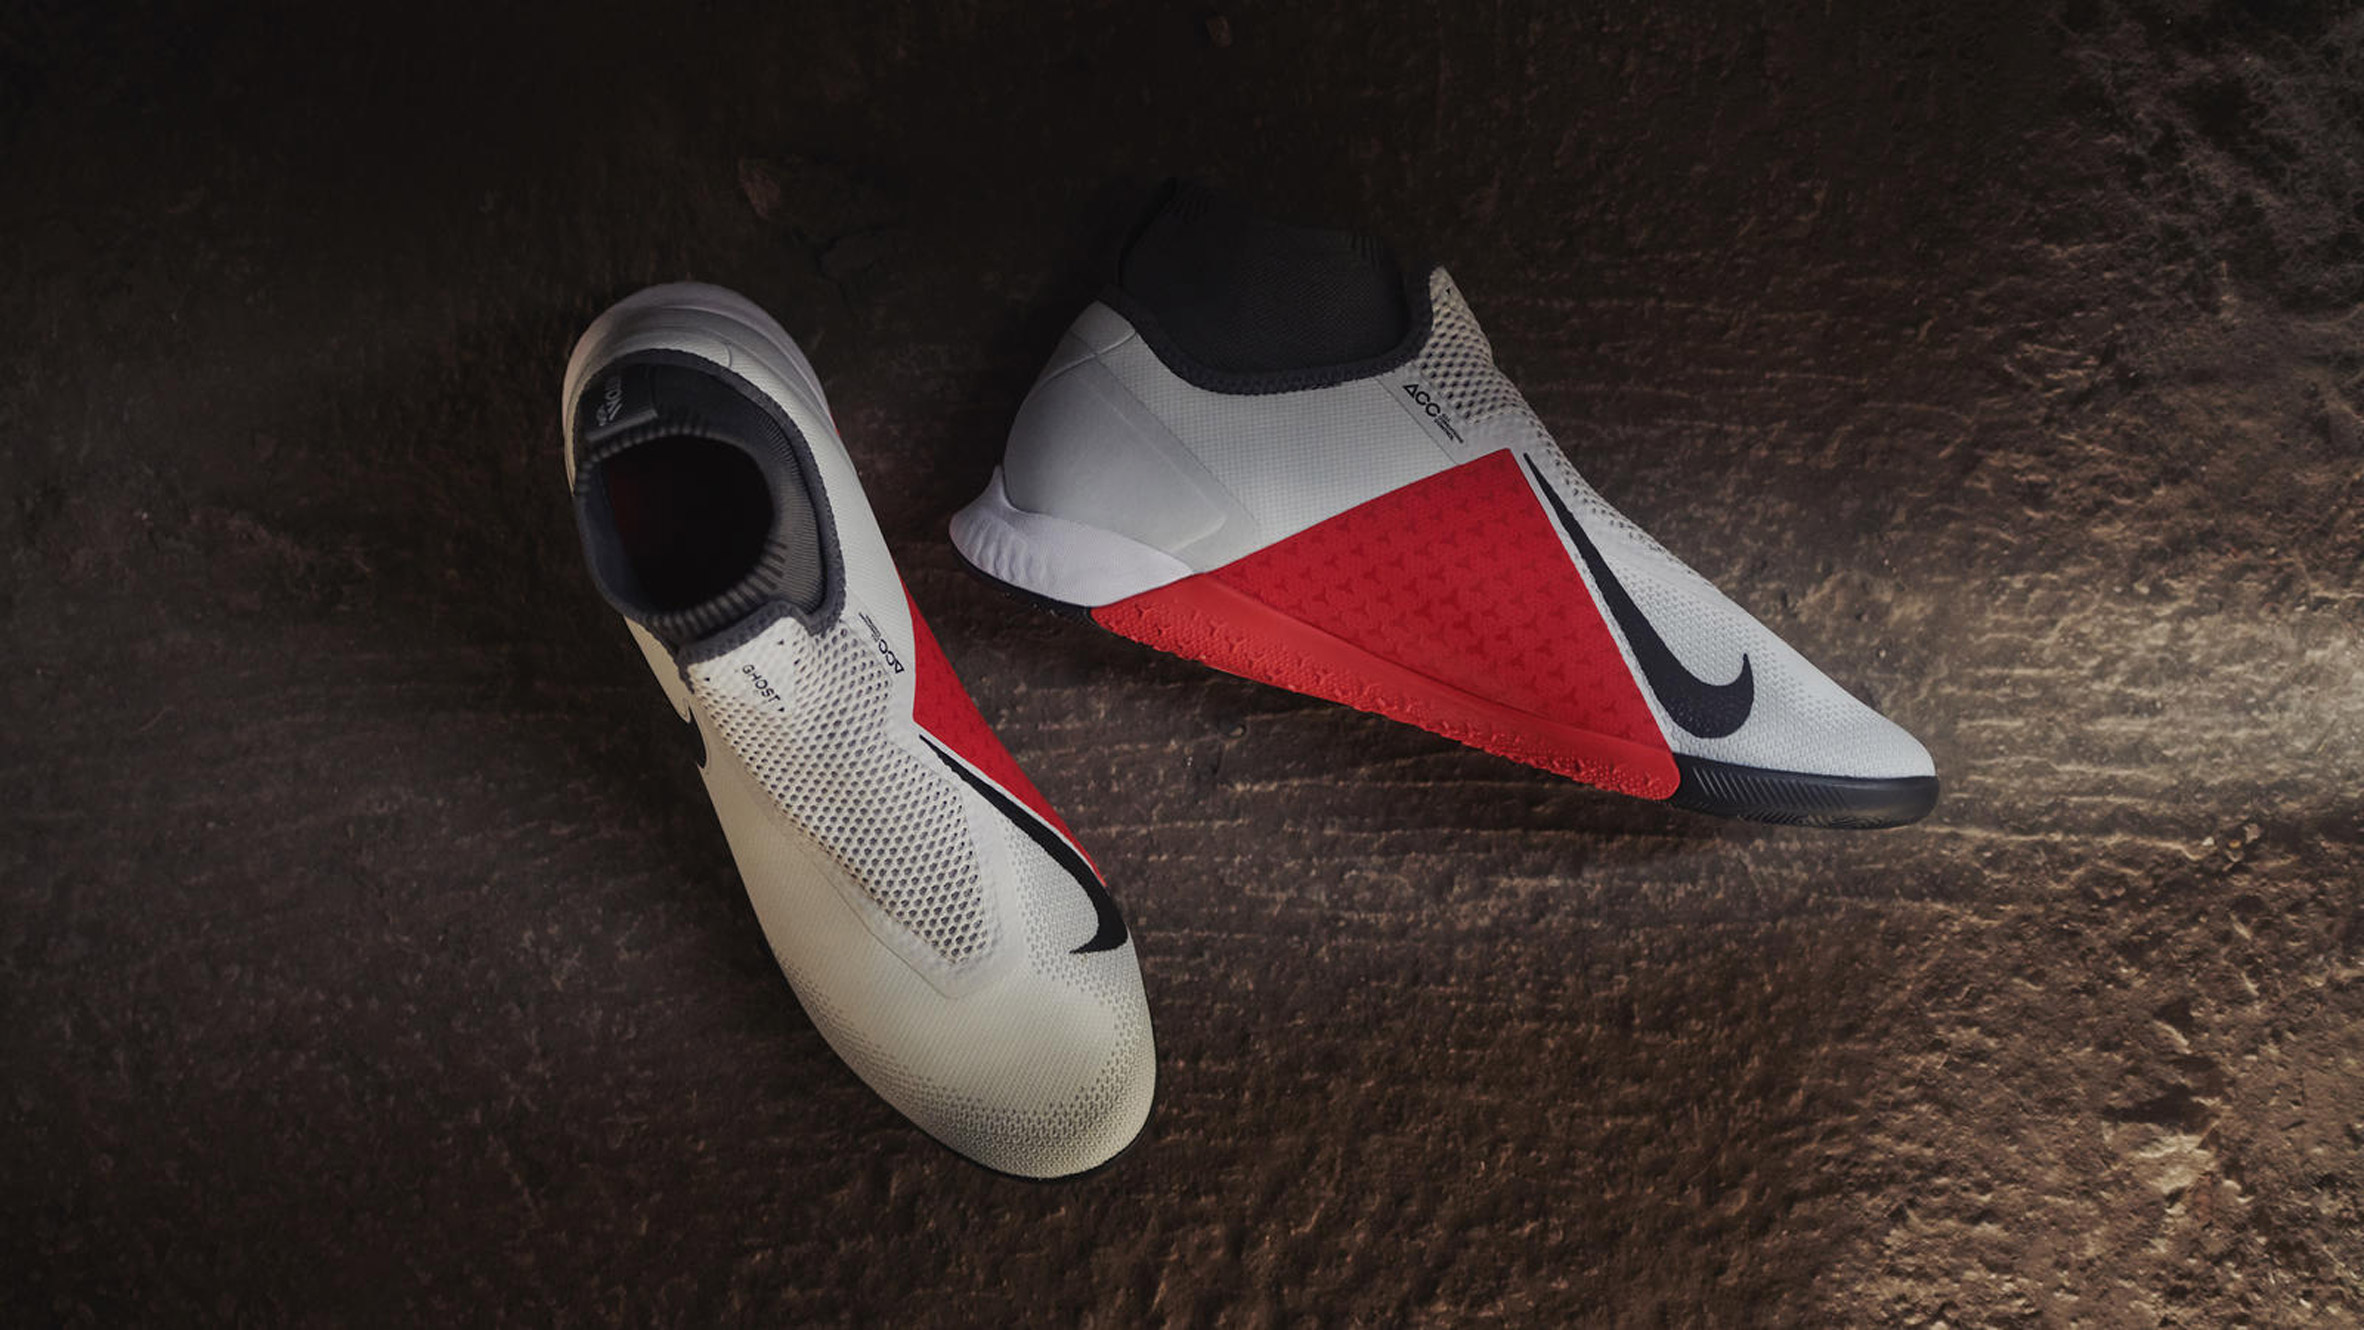 Nike's PhantomVSN football boot is designed to suit an attack-focused game